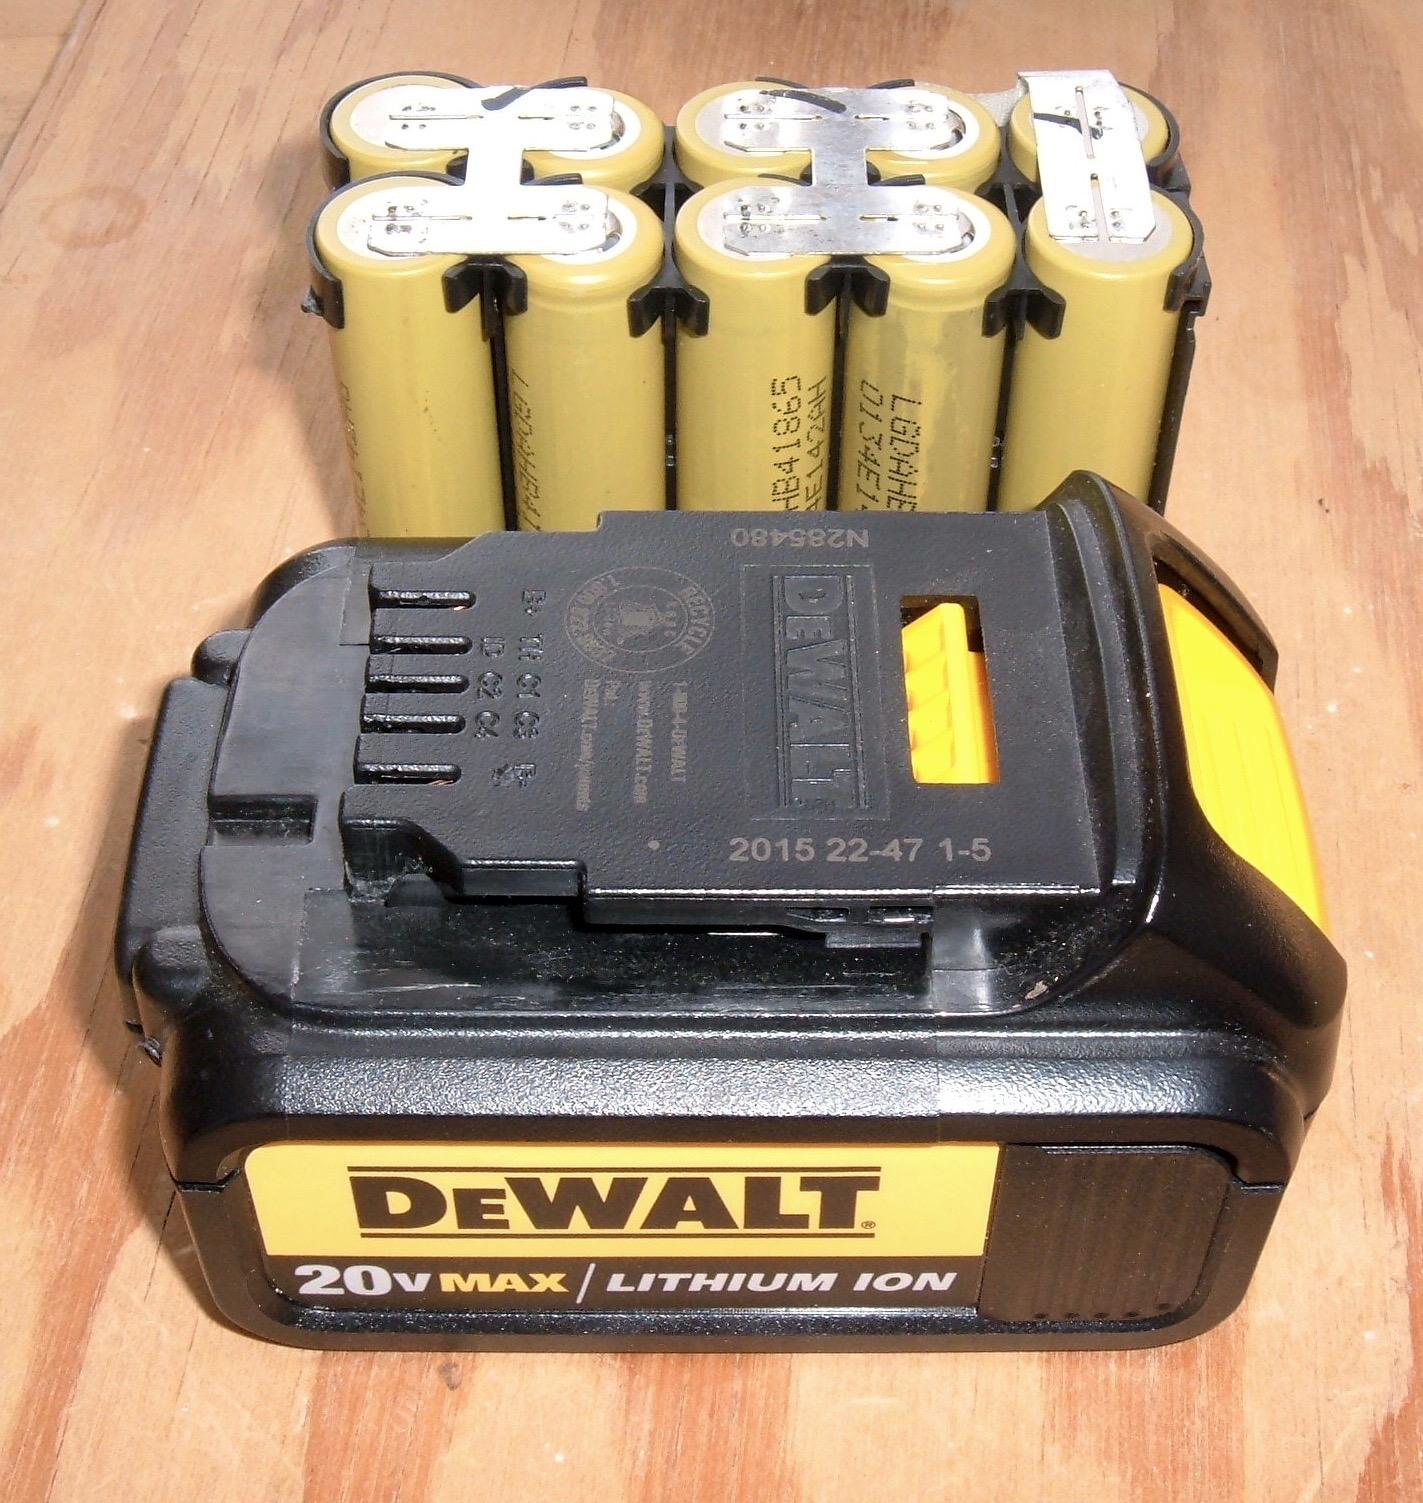 Syonyks Project Blog Dewalt 20v Max 30ah Battery Pack Teardown Make A Protection Circuit Low Voltage Cutoff All But From An End User Perspective This Is Incredibly Nice Tool Its Solidly Built Using Great Cells And Capable Of Handling Ton Power